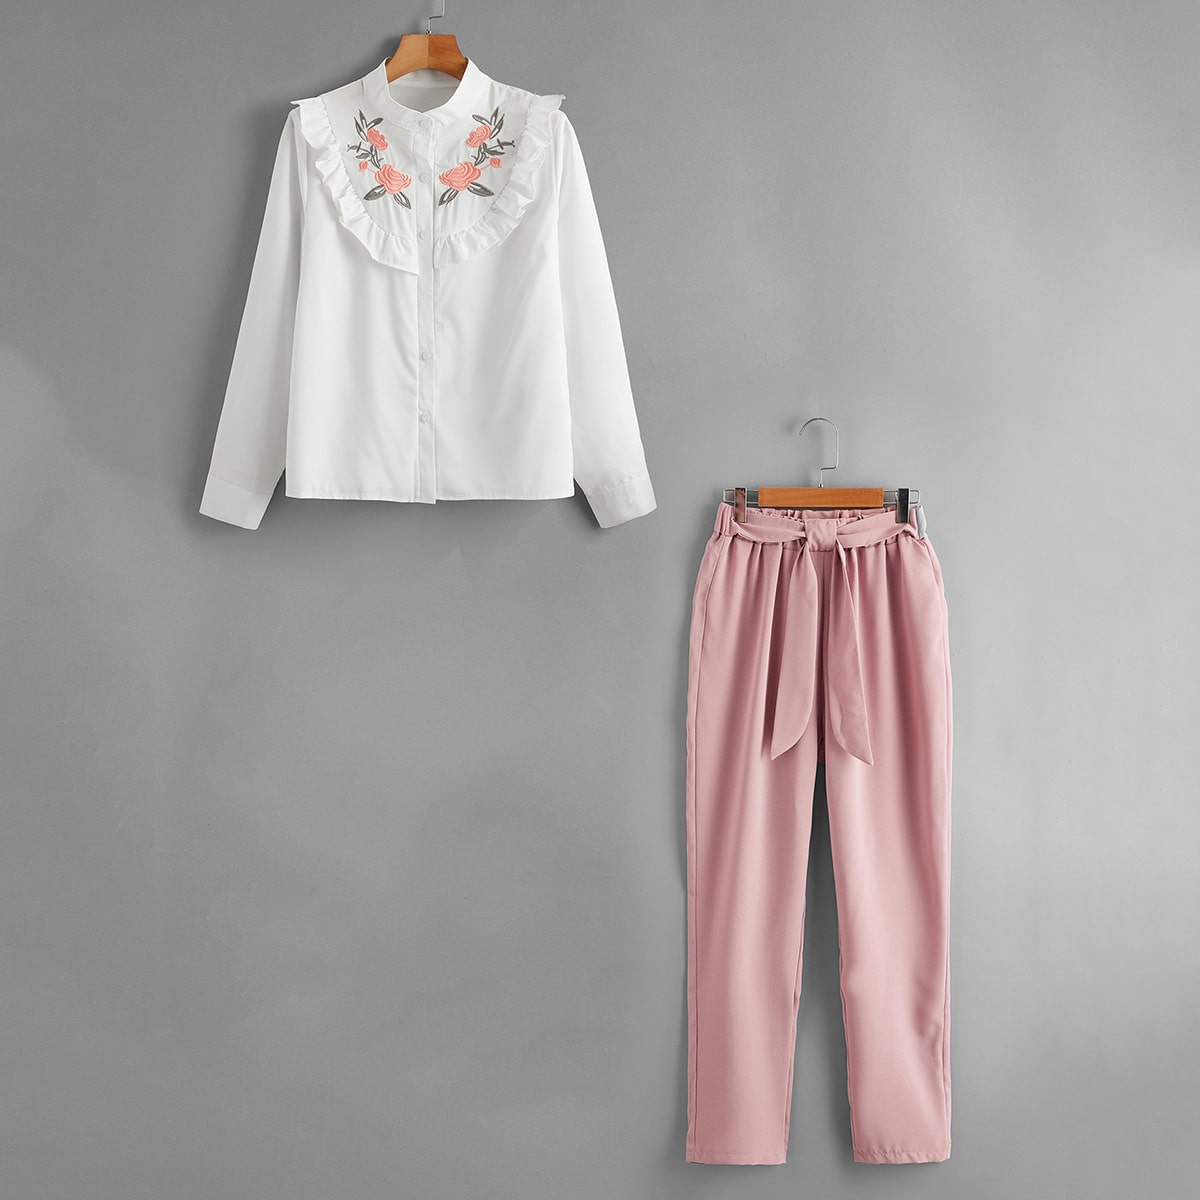 Floral Embroidery Ruffle Trim Blouse & Belted Pants thumbnail